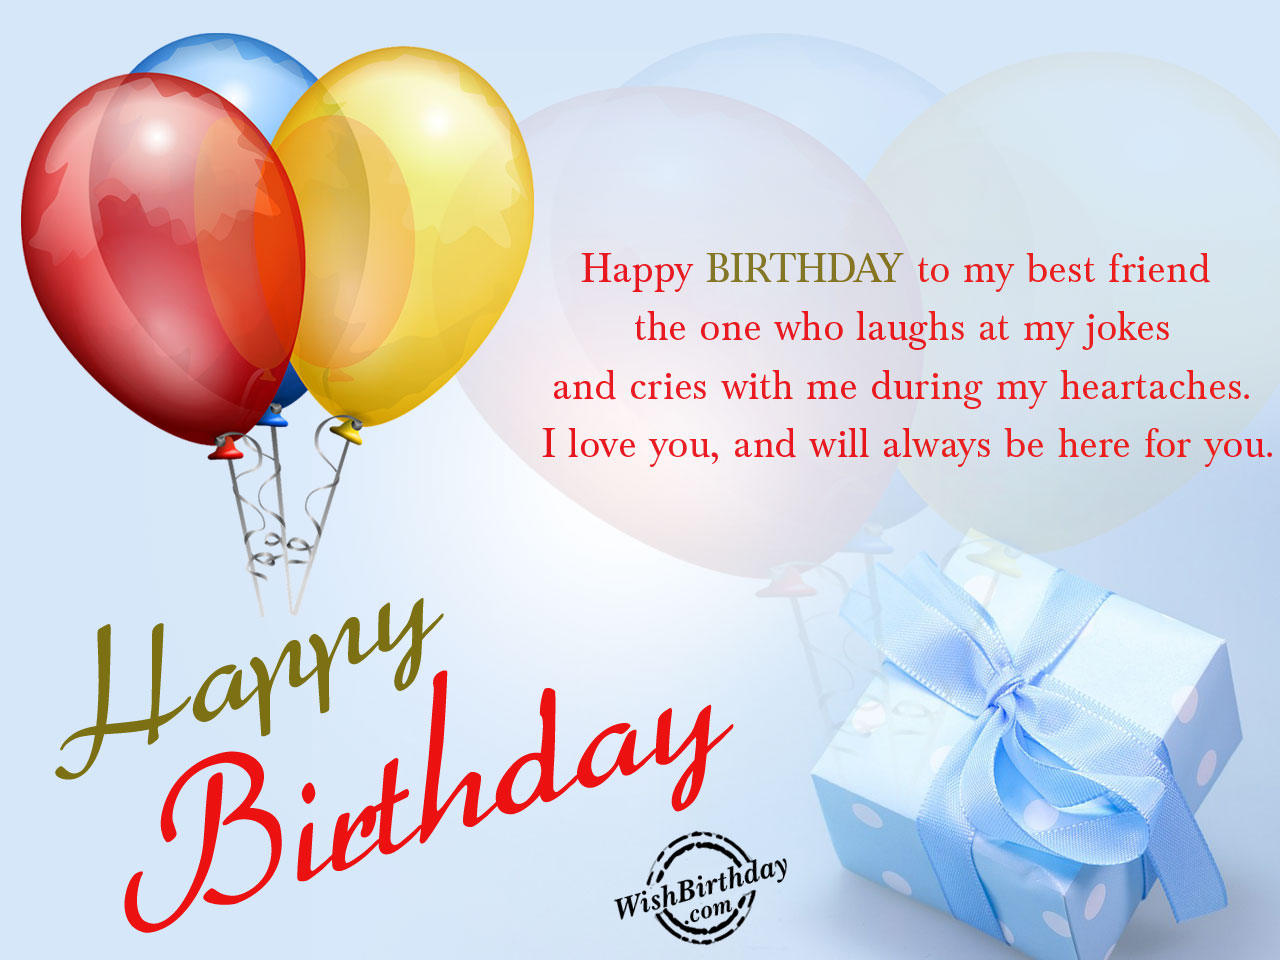 happy birthday images for best friend💐 bday cards and